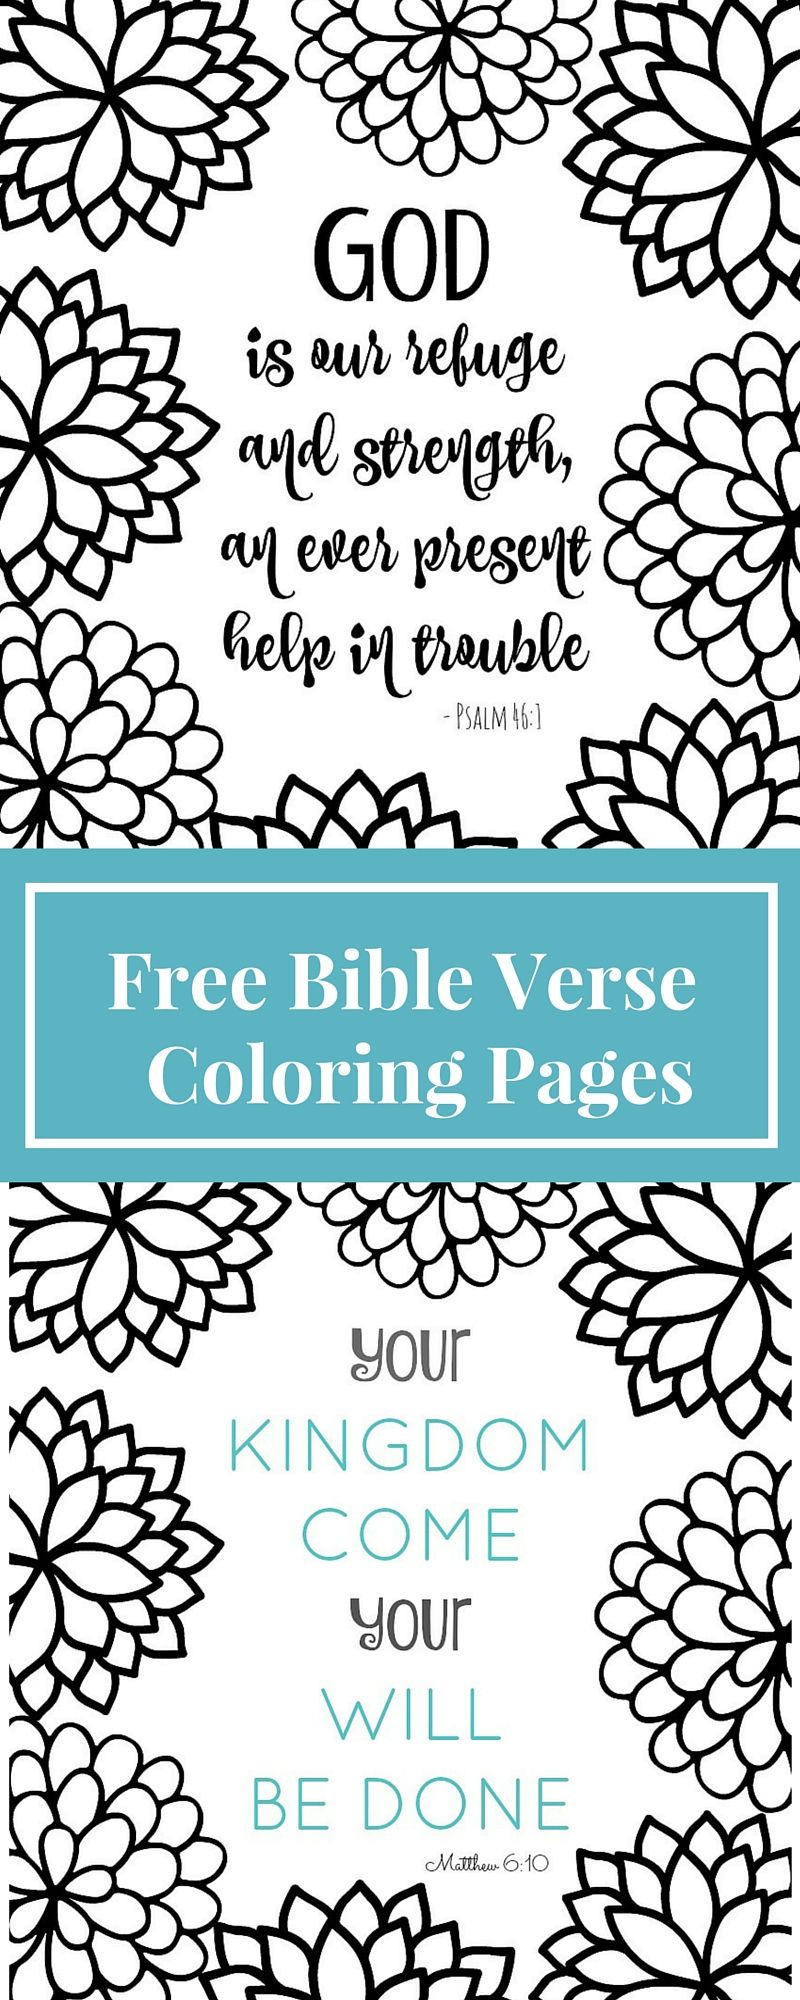 Thanksgiving coloring pages with bible verses - Free Printable Bible Verse Coloring Pages With Bursting Blossoms Psalm And Matthew I Love Using These To Relax Before Starting Work